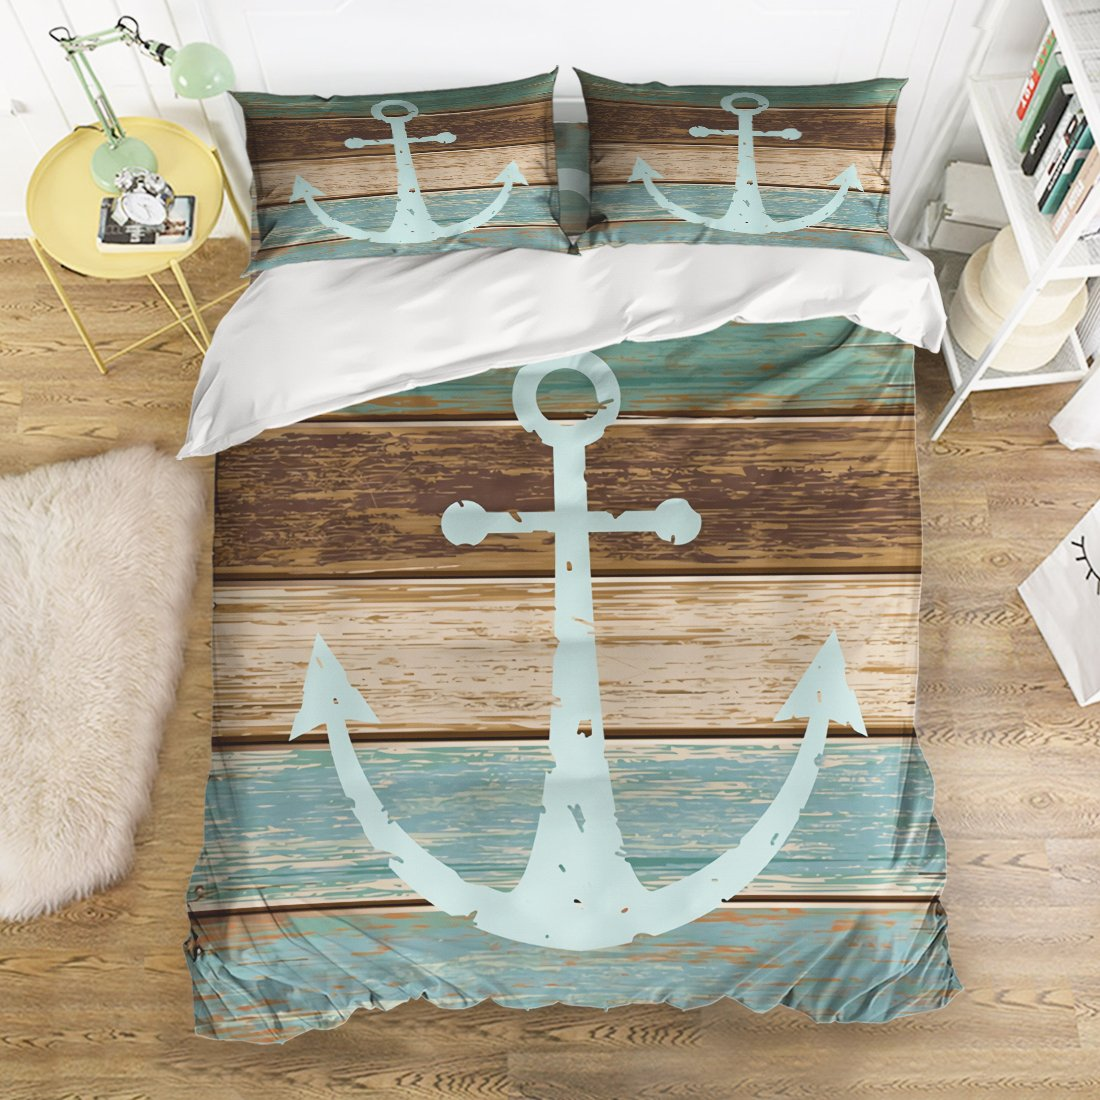 4 Pcs Bedding Set-Nautical Anchor Rustic Wood Board Pattern Duvet Cover Set Ultra Soft and Easy Care Sheet Quilt Sets with Decorative Pillow Covers for Children Kids Adults-Twin